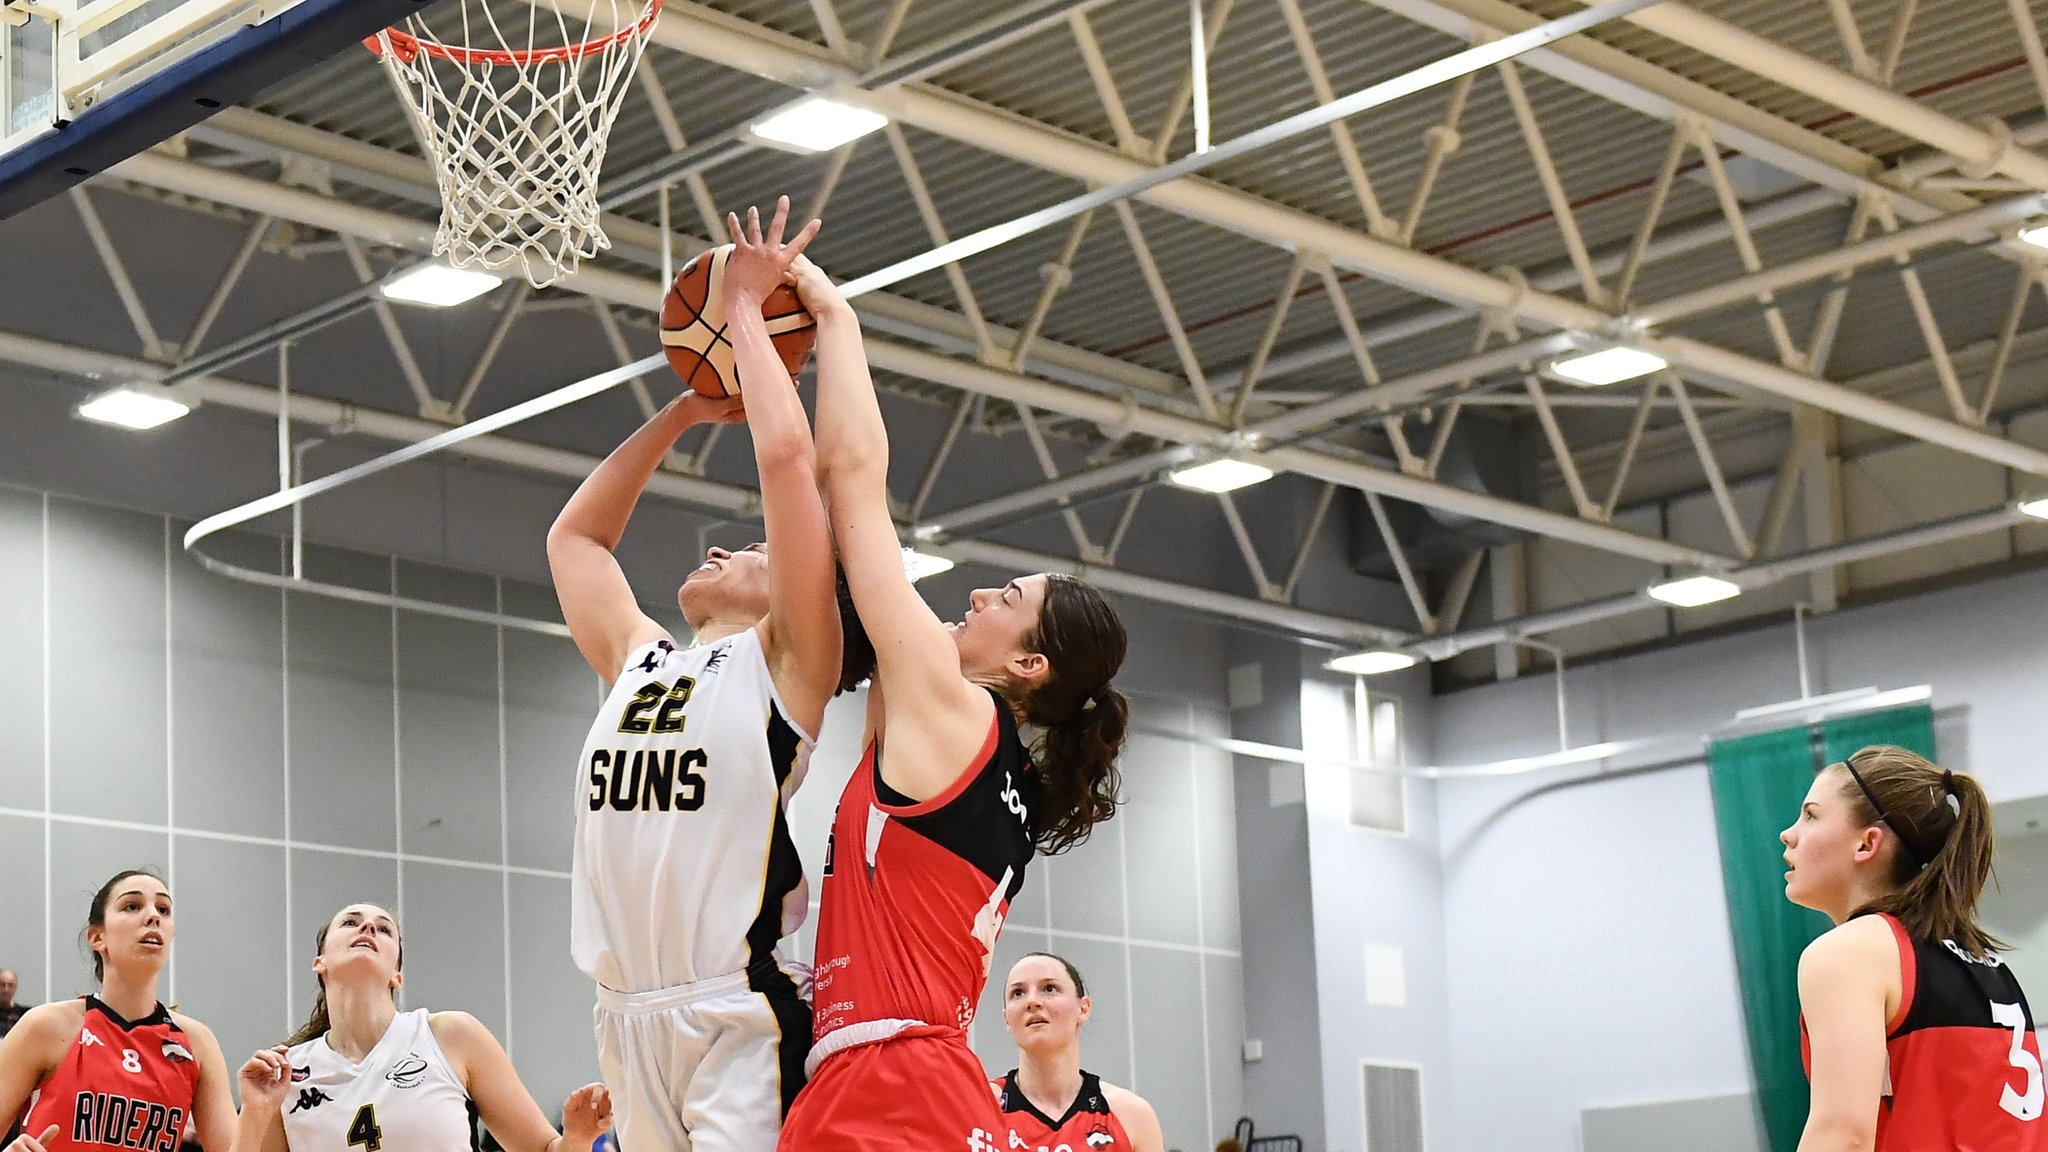 WBBL Play-off final: Suns and Riders head for WBBL decider